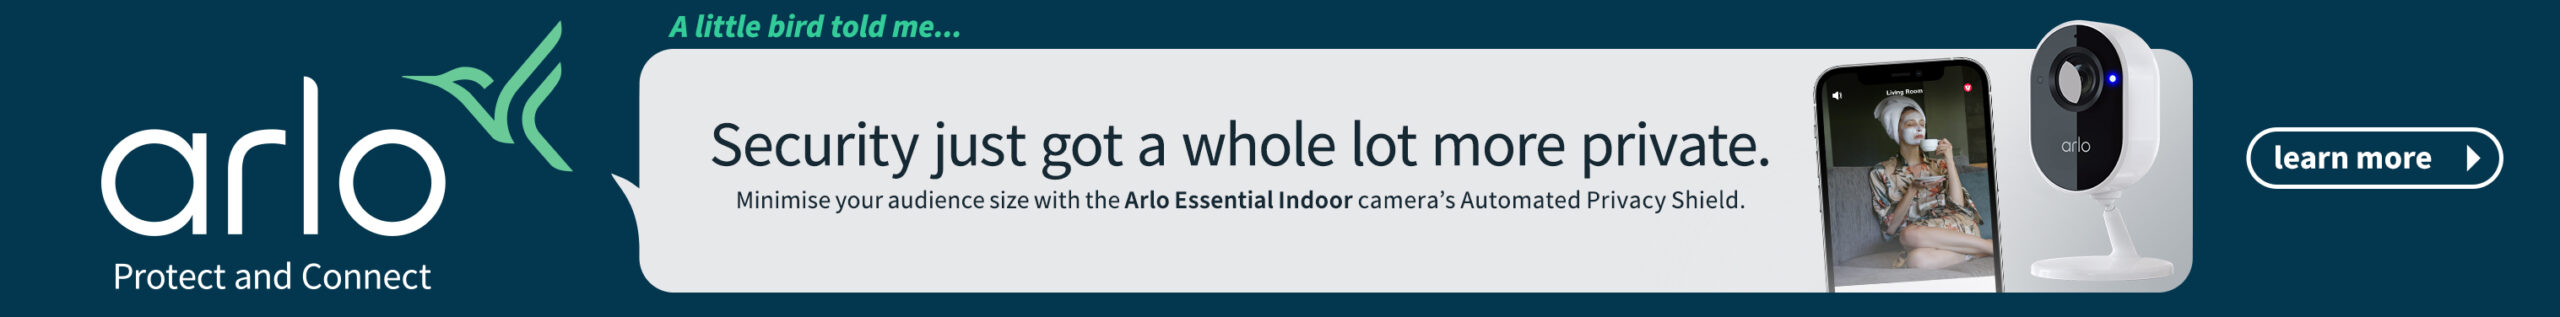 ARL0355 Arlo ESS Indoor Generic Banner 728x90 V4 scaled New Smartphone Hero Next Week